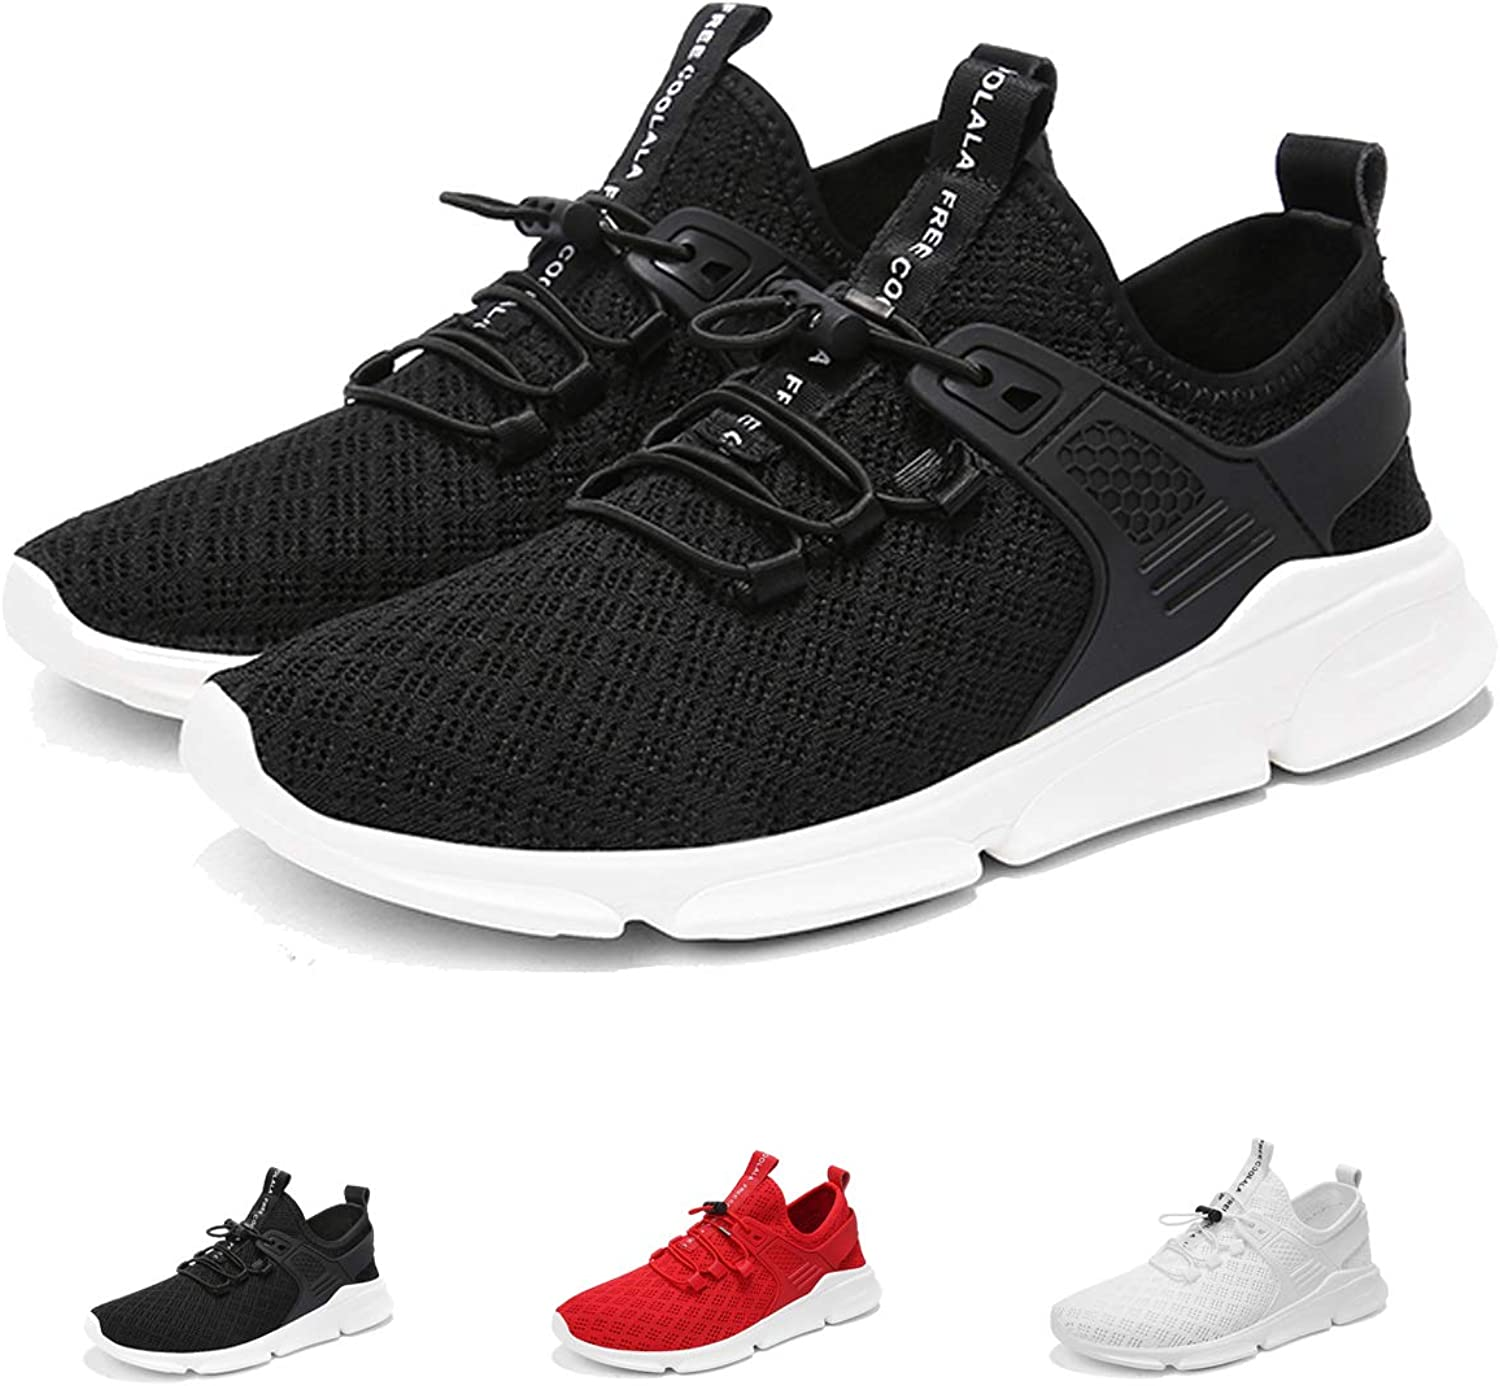 Mens Running shoes Ultra Lightweight Breathable Fashion Sneakers Mesh Athletic Casual Walking shoes